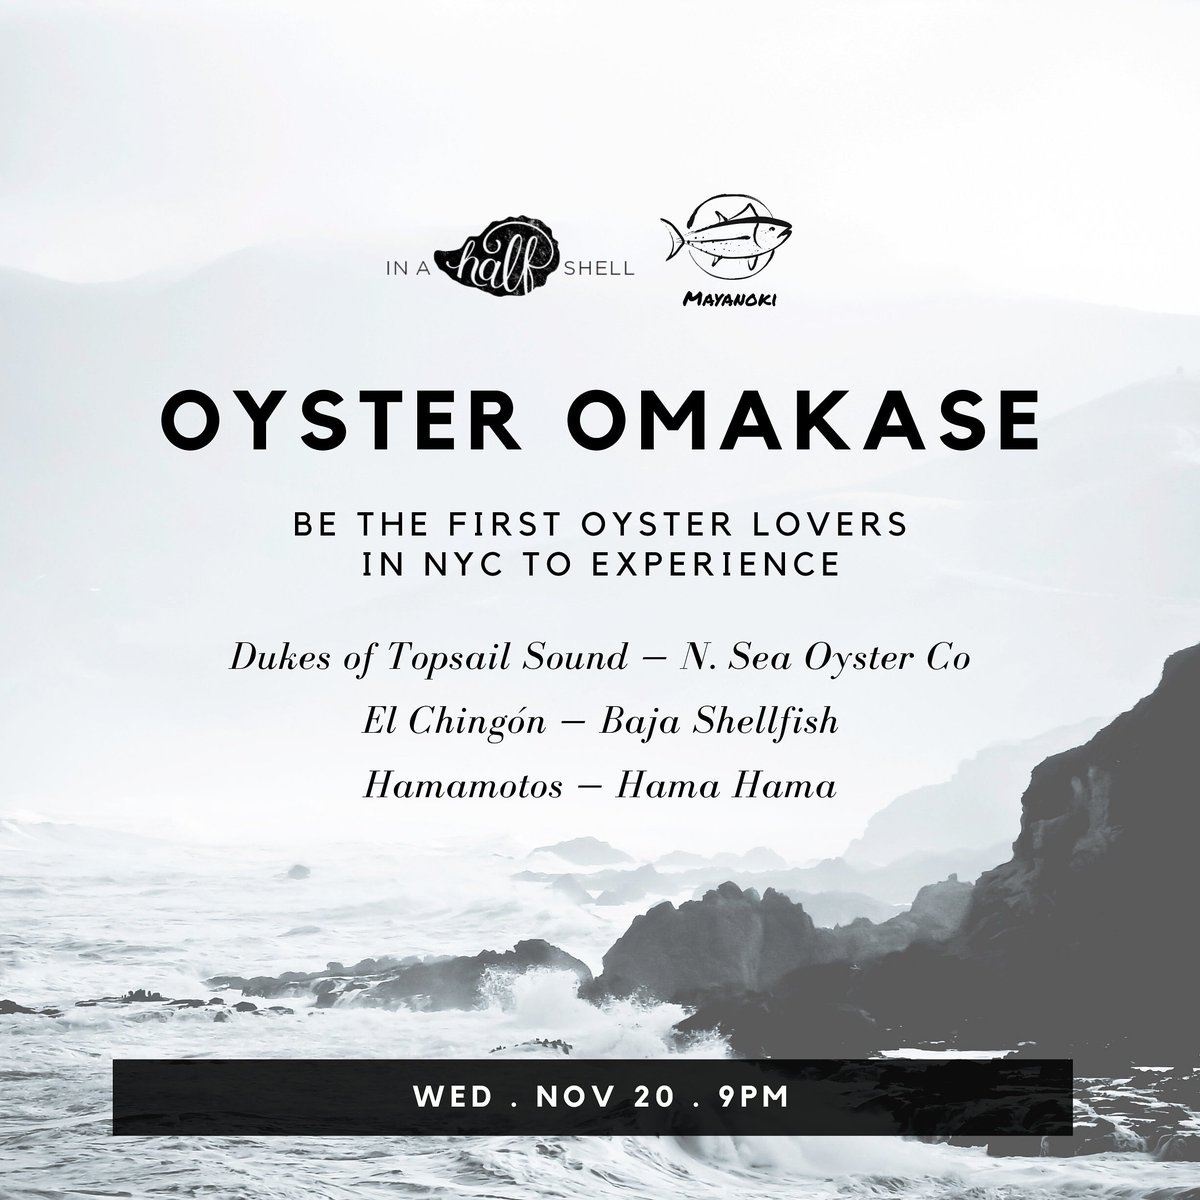 If I weren't co-hosting this event with @mayanoki I would totally be booking tickets asap. 🤣 This is a true oyster lover's kind of event!! Only 8 seats available. DM me for details.